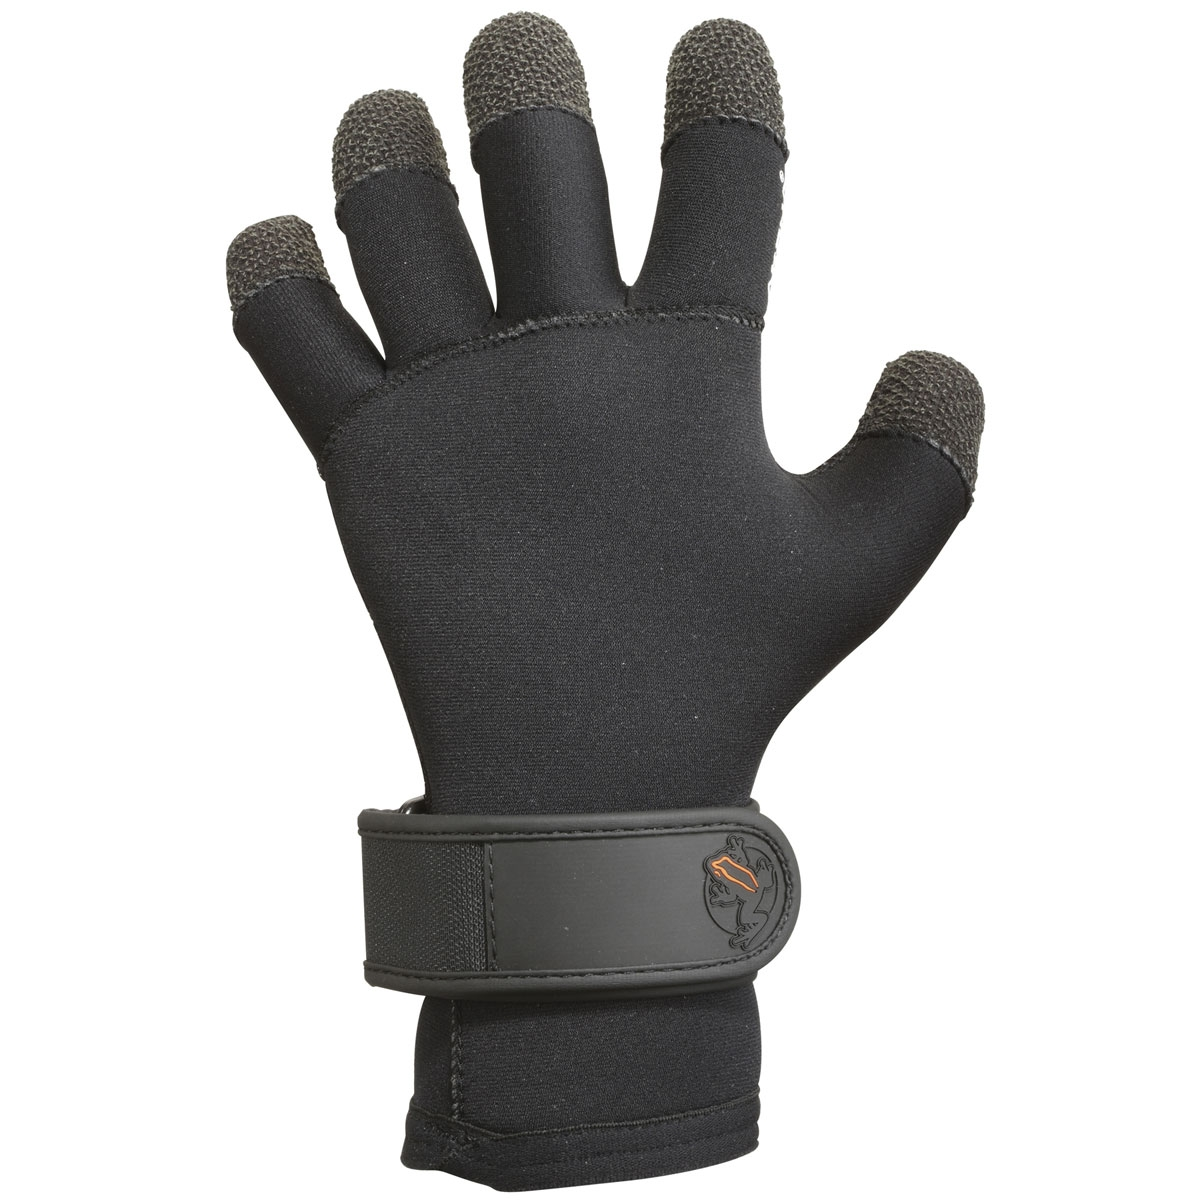 Akona 5mm Armor Tex Glove MD